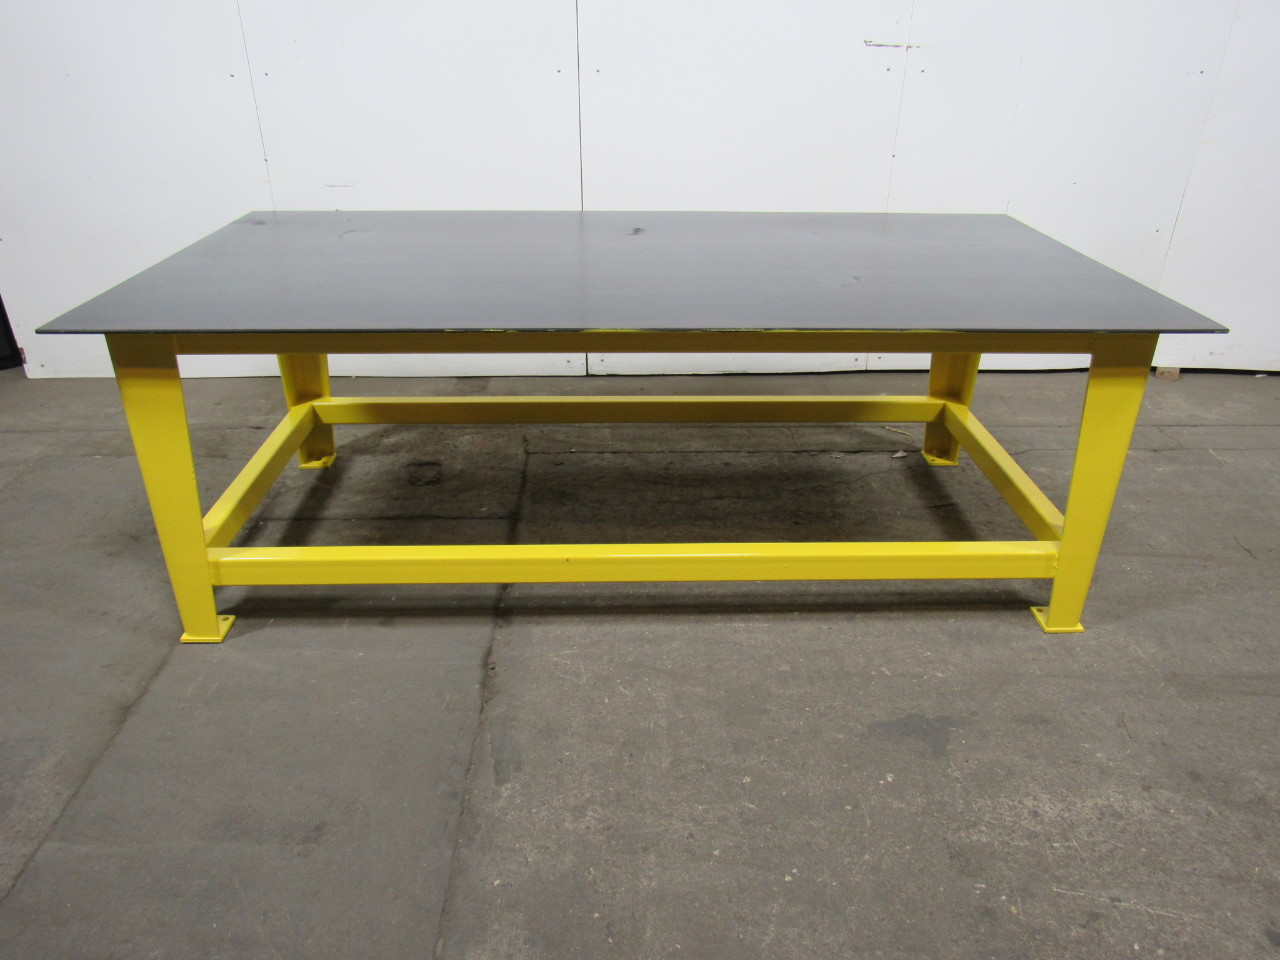 Steel Welding Work Bench Assembly Layout Table 96 X 48 3